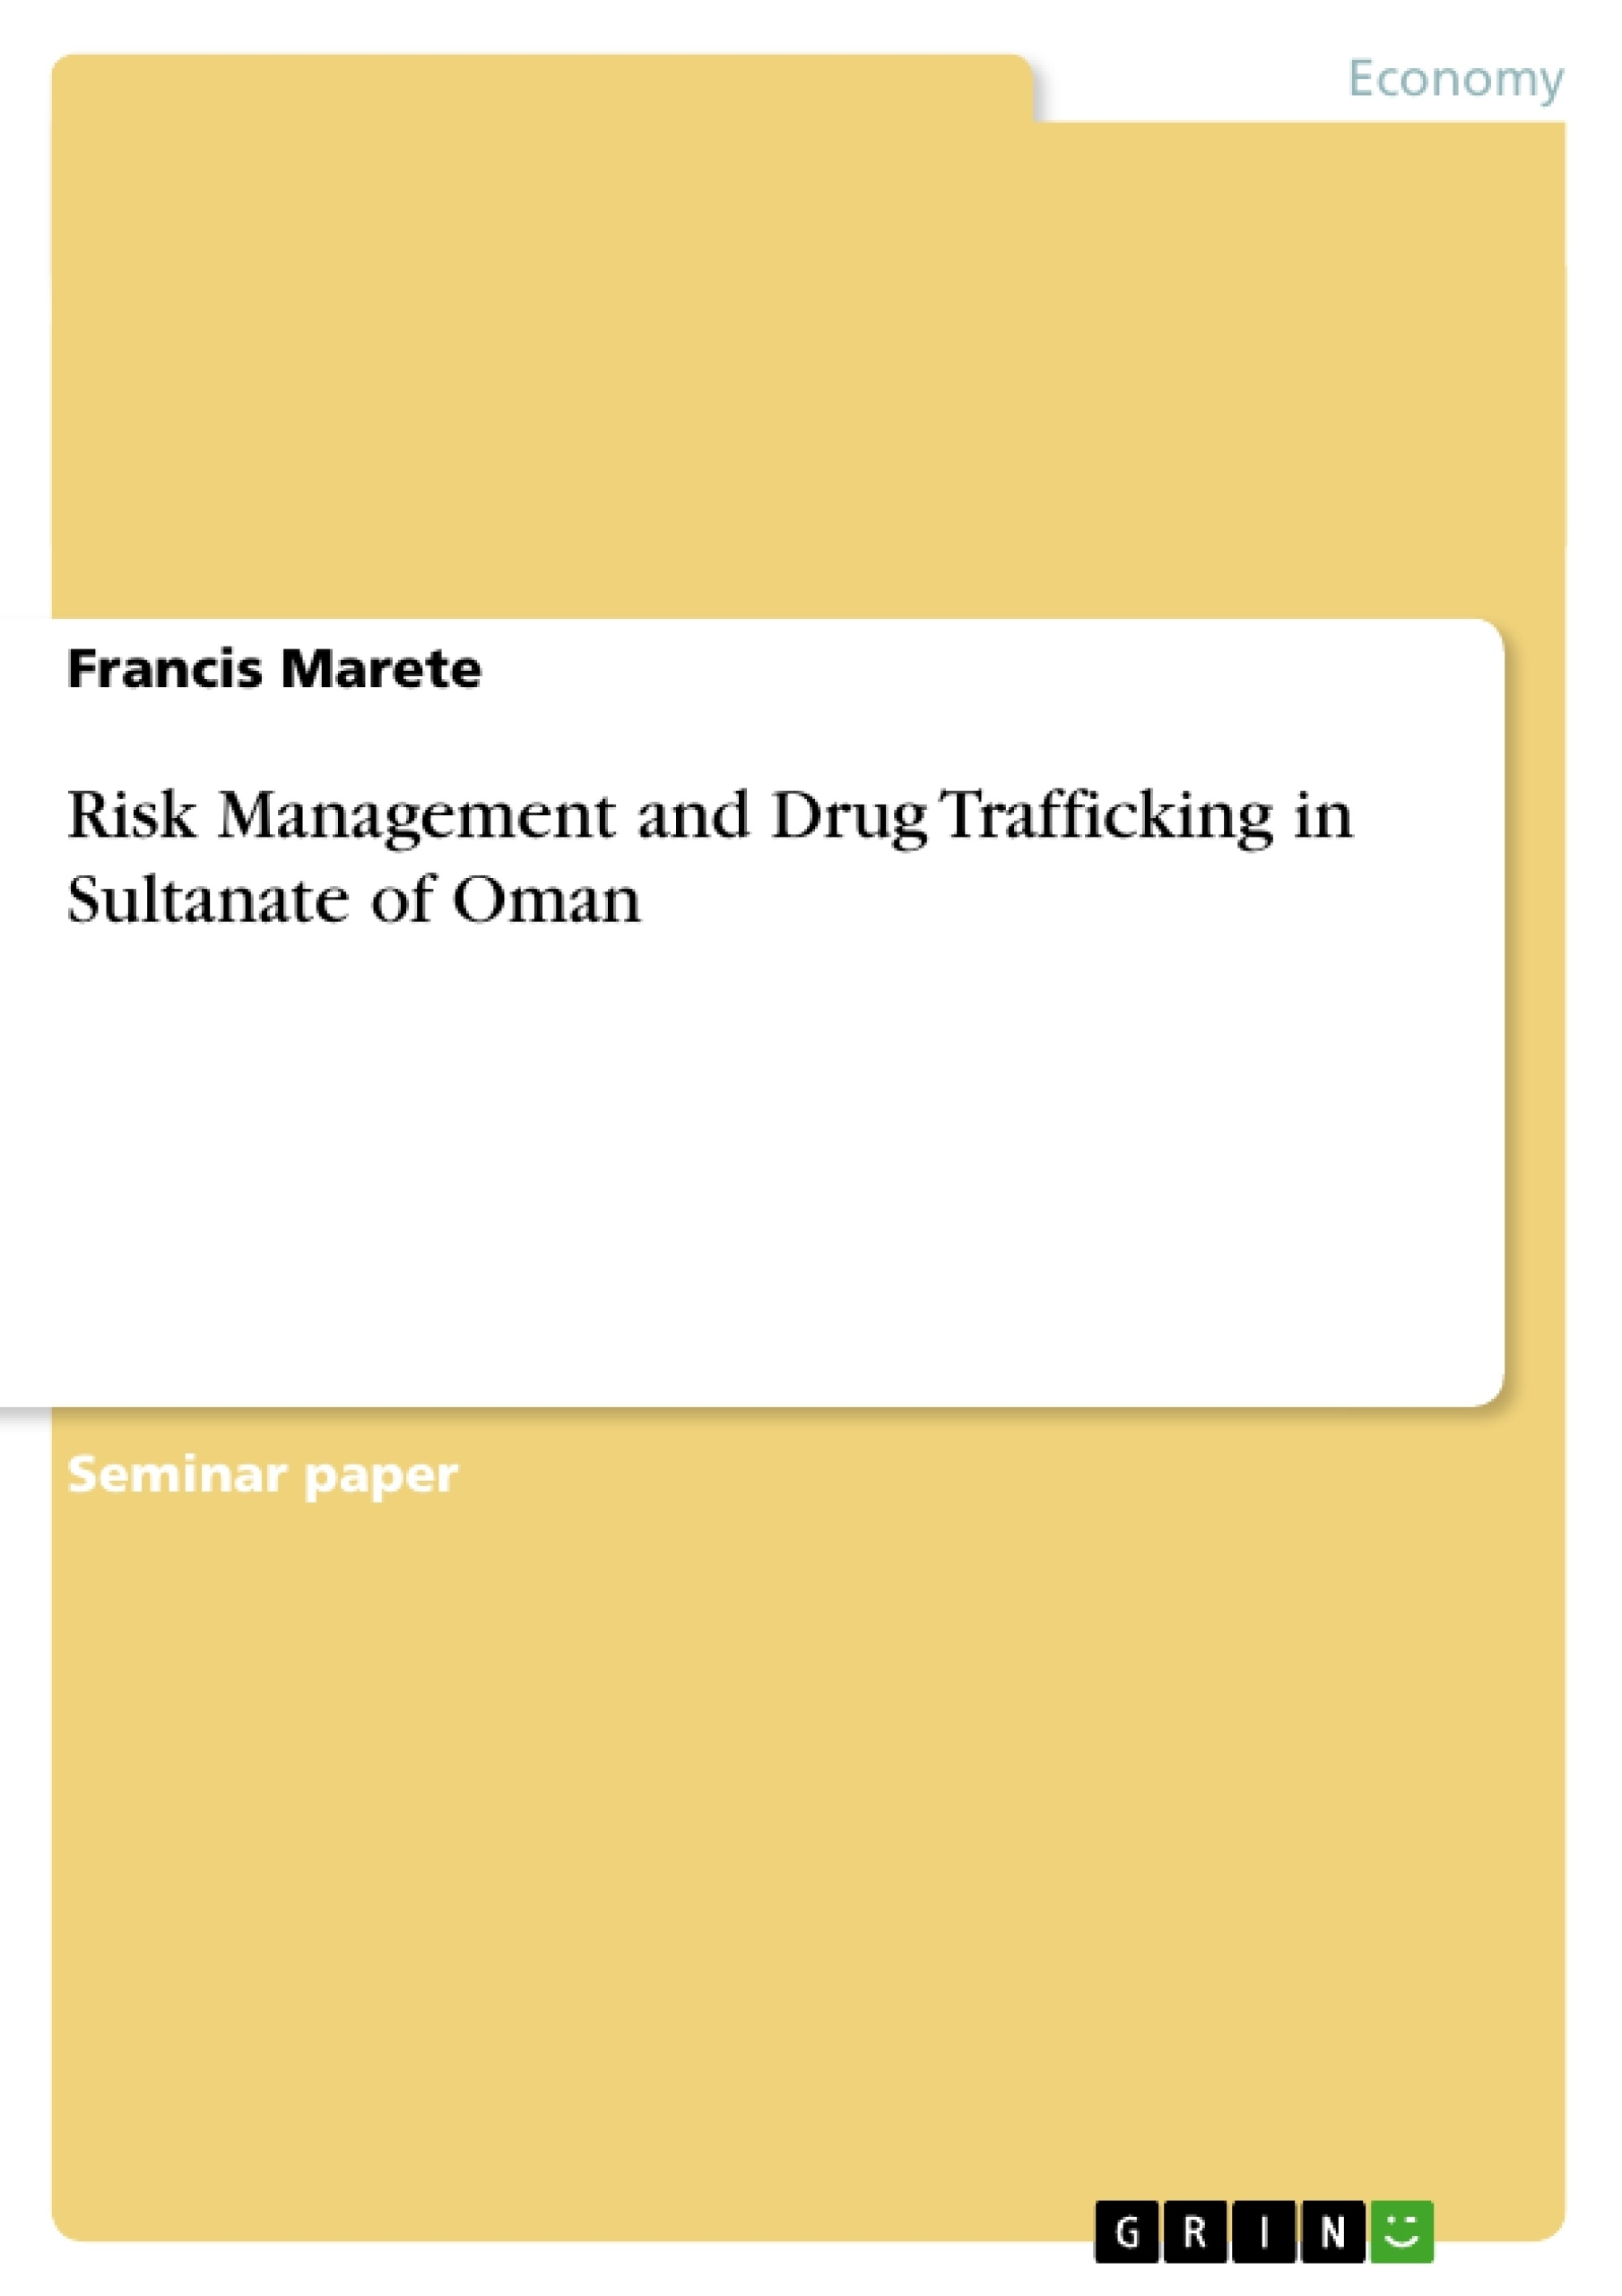 Title: Risk Management and Drug Trafficking in Sultanate of Oman